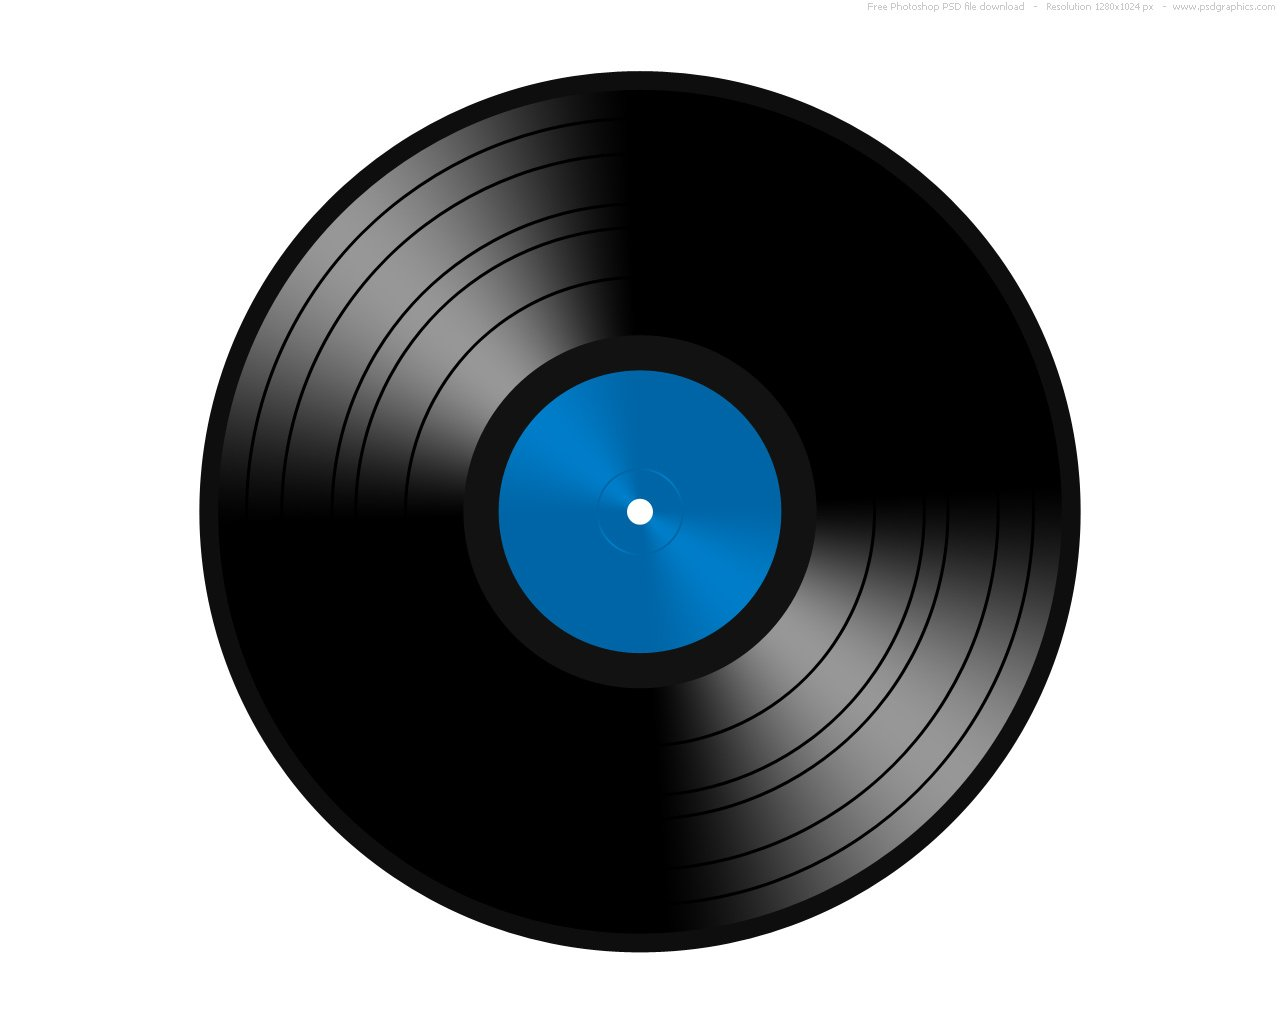 Full size JPG preview Vinyl record 1280x1024